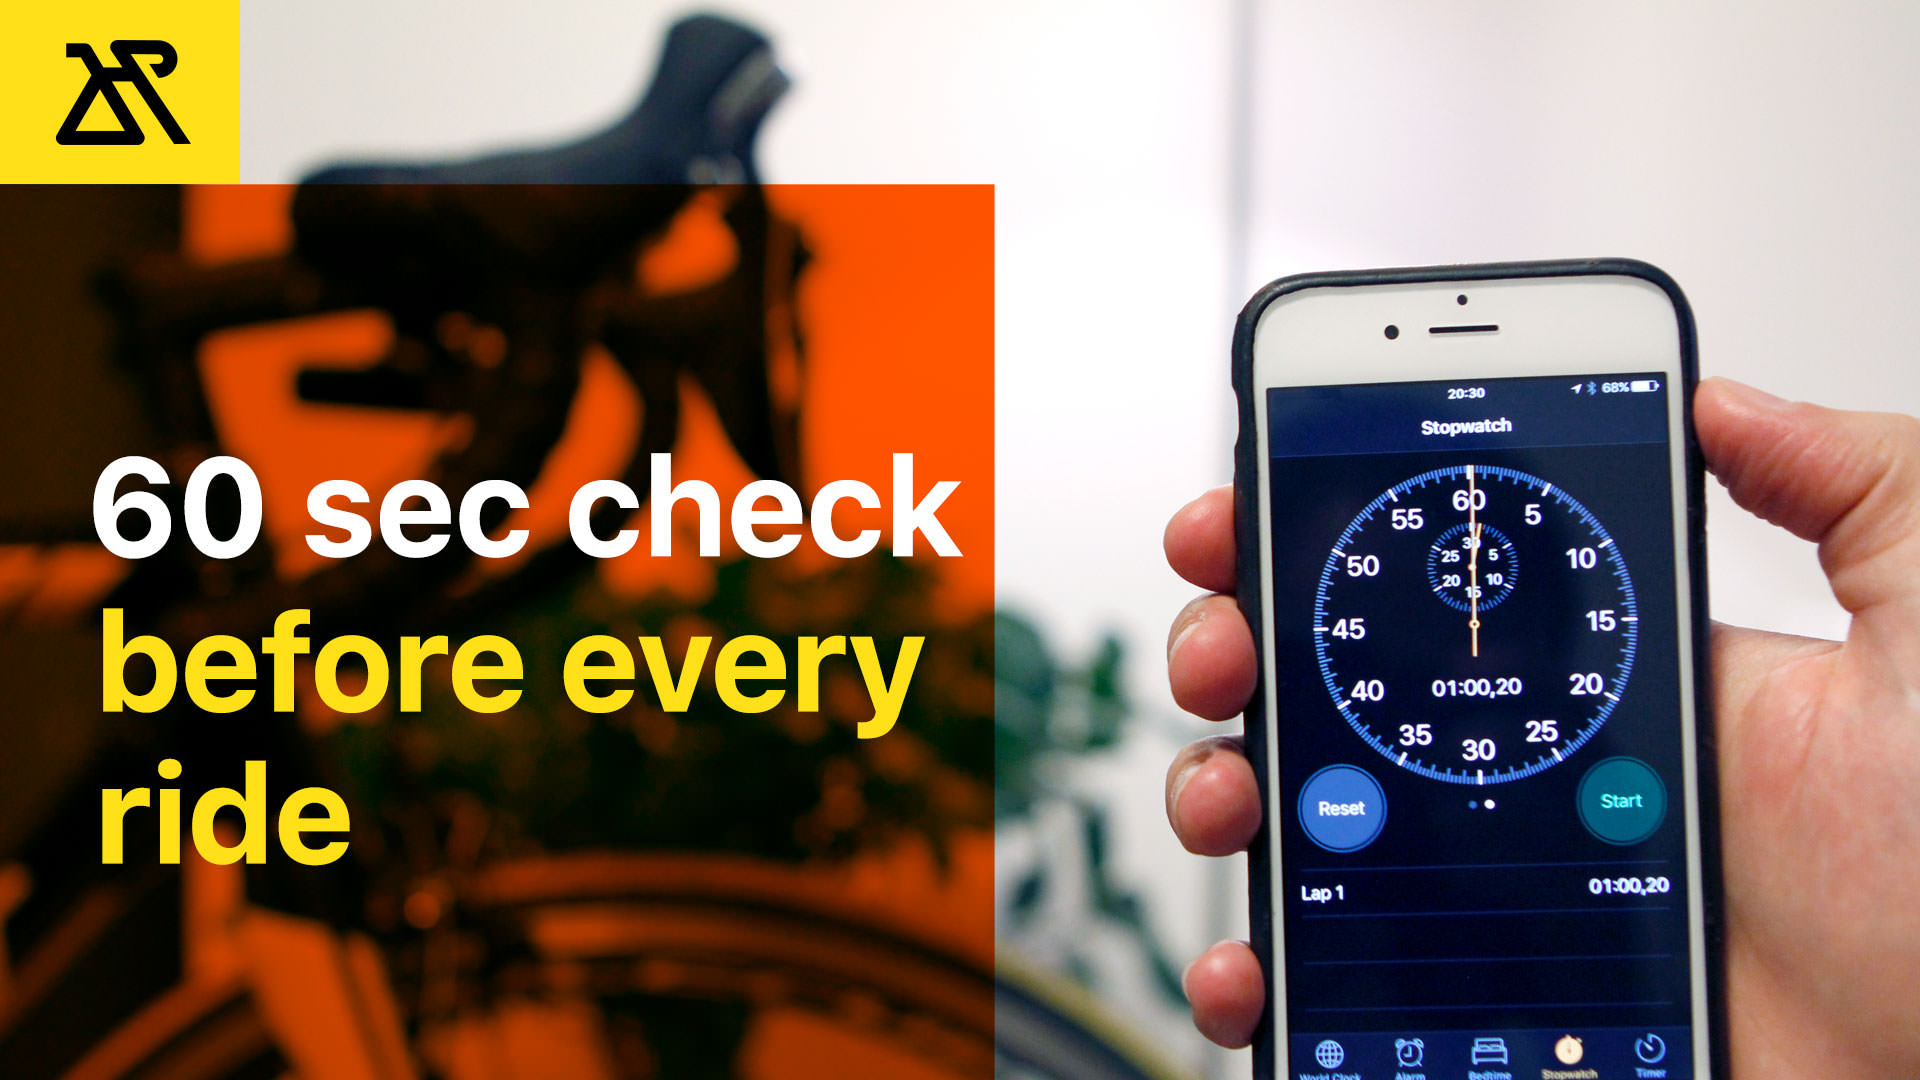 60 Seconds Check Before Every Ride Cycling Check How-To